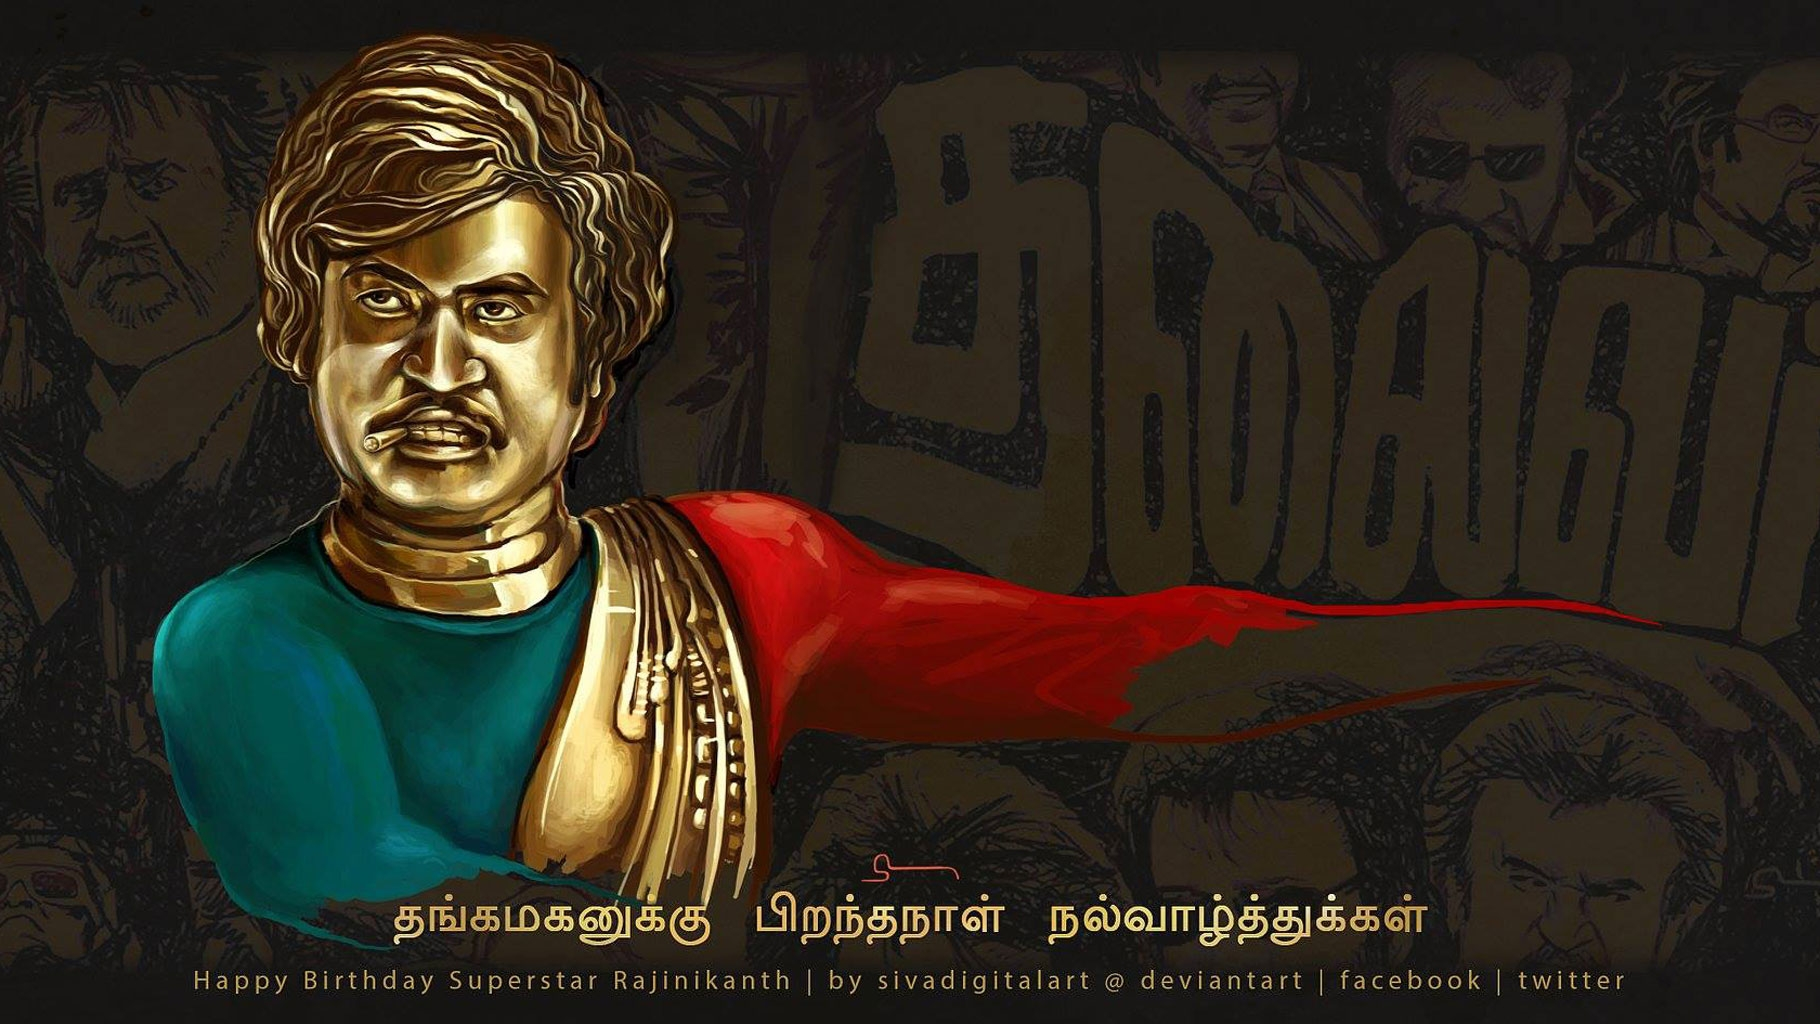 Rajinikanth 68th Birthday Thalaiva Wishes Thalaiva On His B Day